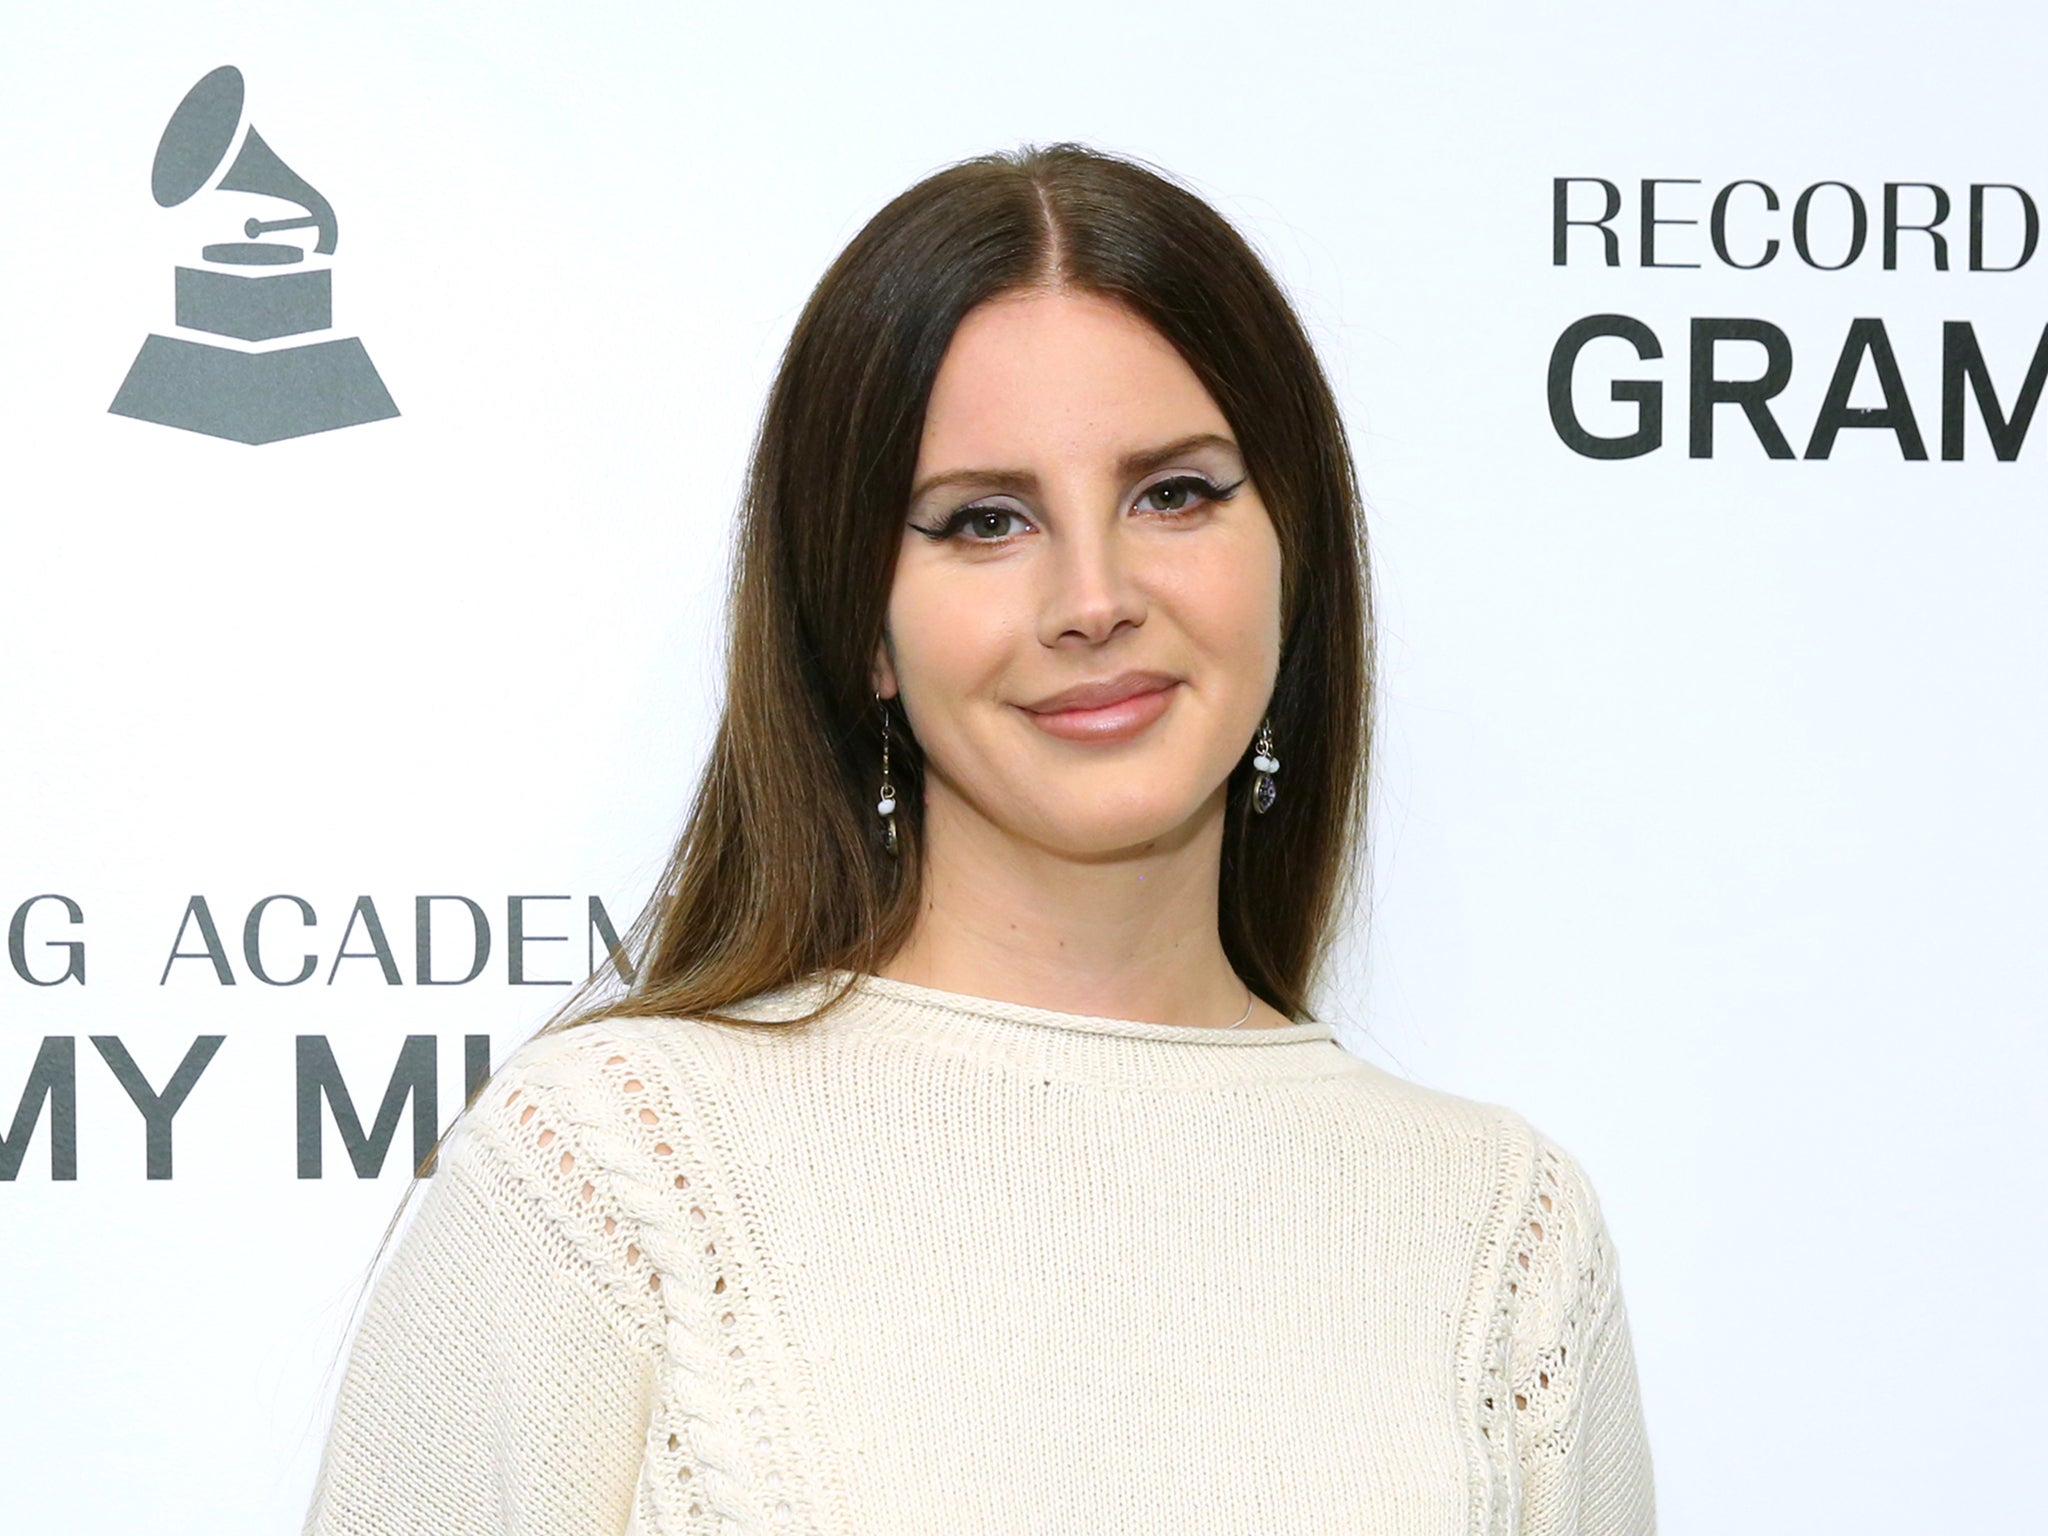 Lana Del Rey defends new album cover against 'people of colour' criticism: 'I'm literally changing the world'